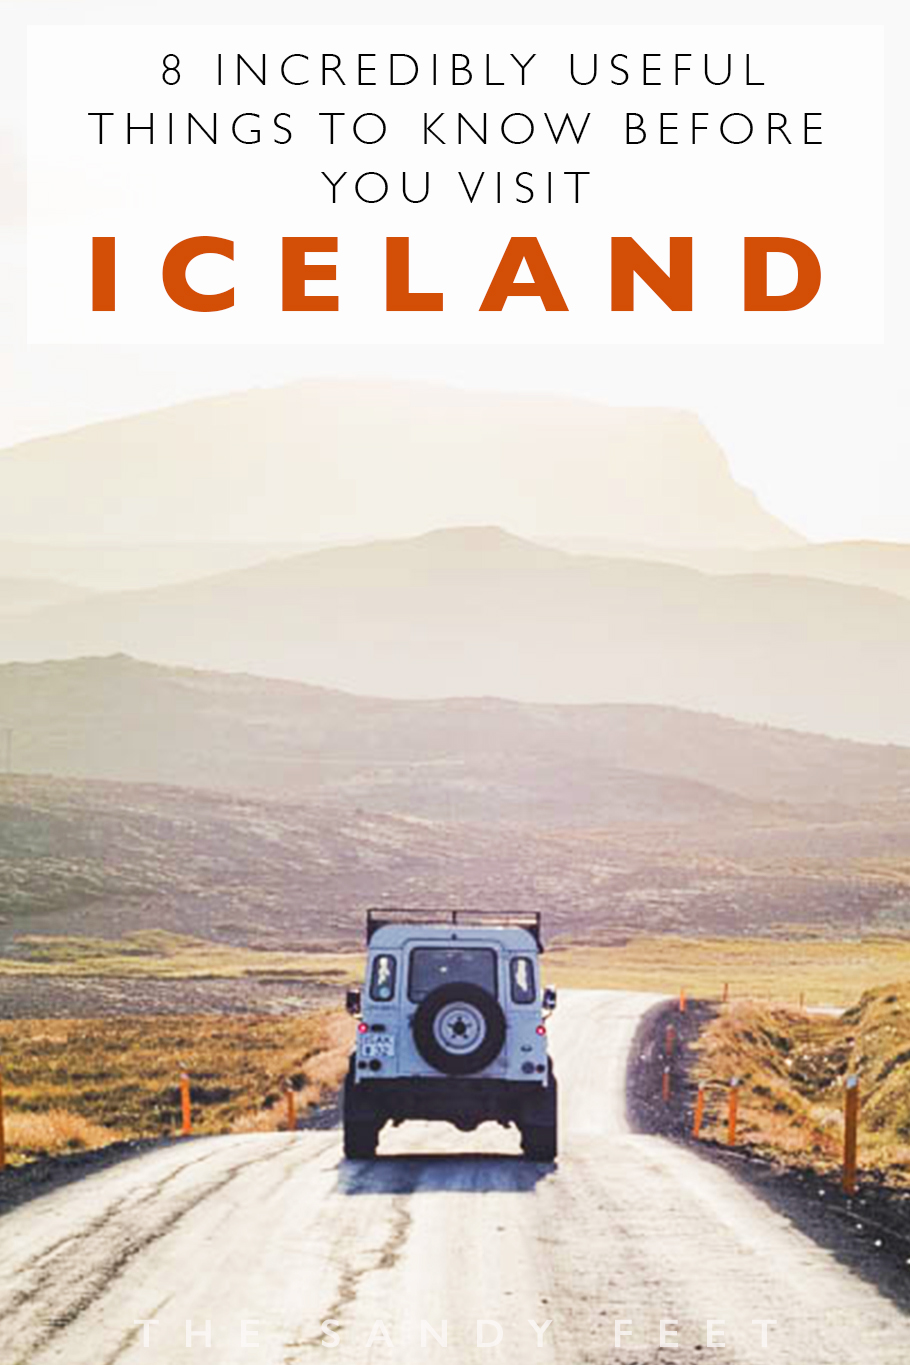 Top Iceland Travel Tips: 8 Incredibly Useful Things To Know Before You Visit Iceland